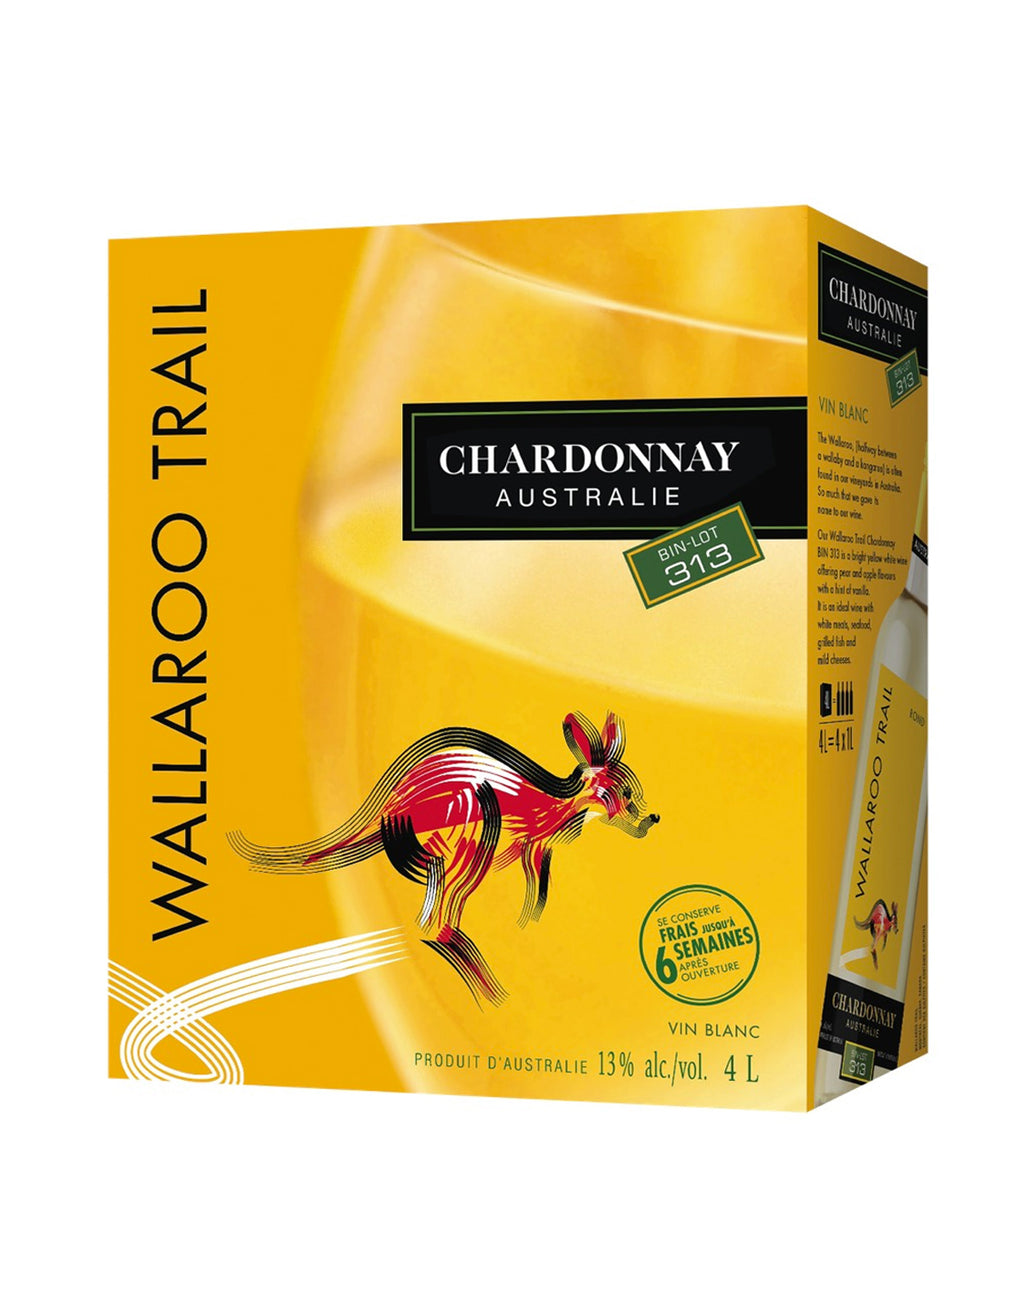 Wallaroo Trail Chardonnay - 4 Litre Box